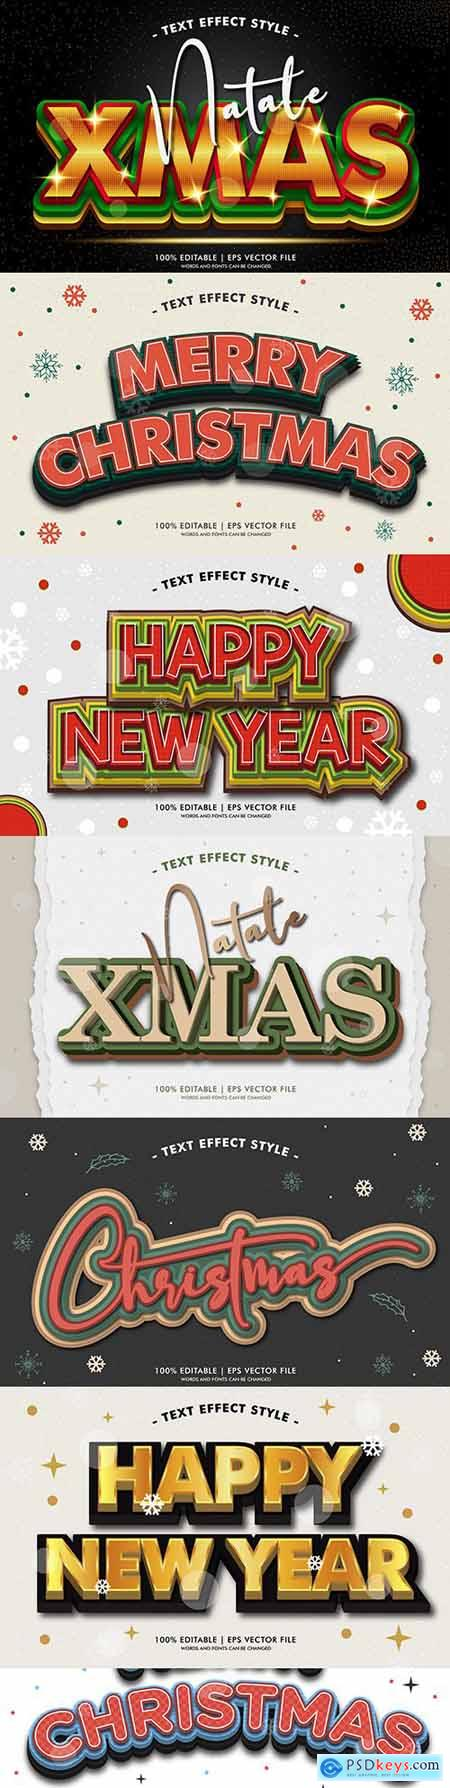 Merry Christmas editable font effect text collection 3